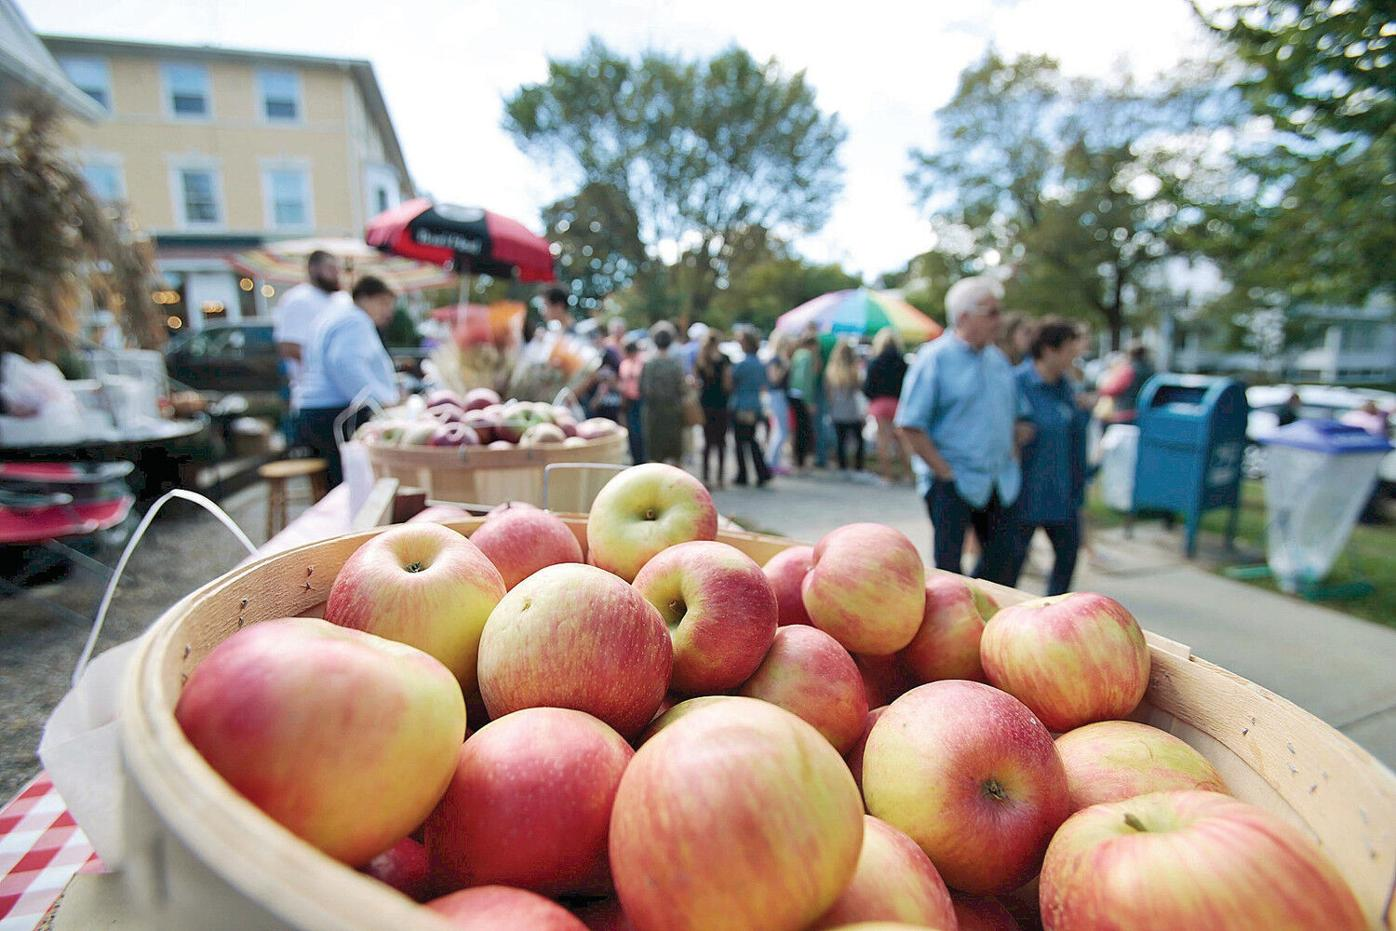 More than just apples at the Lenox Apple Squeeze